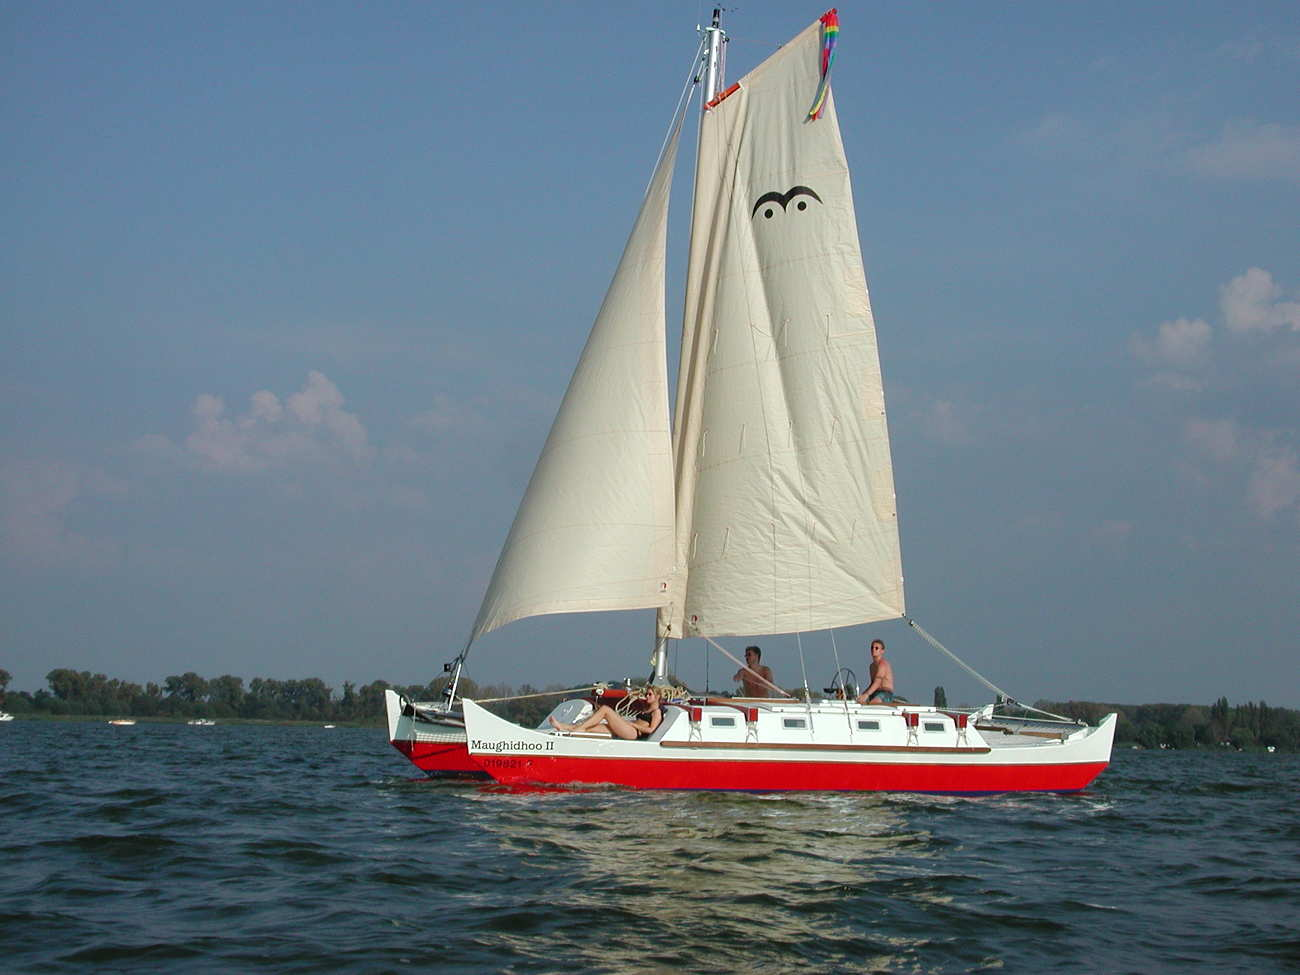 Pahi 31 sailing, three people on deck